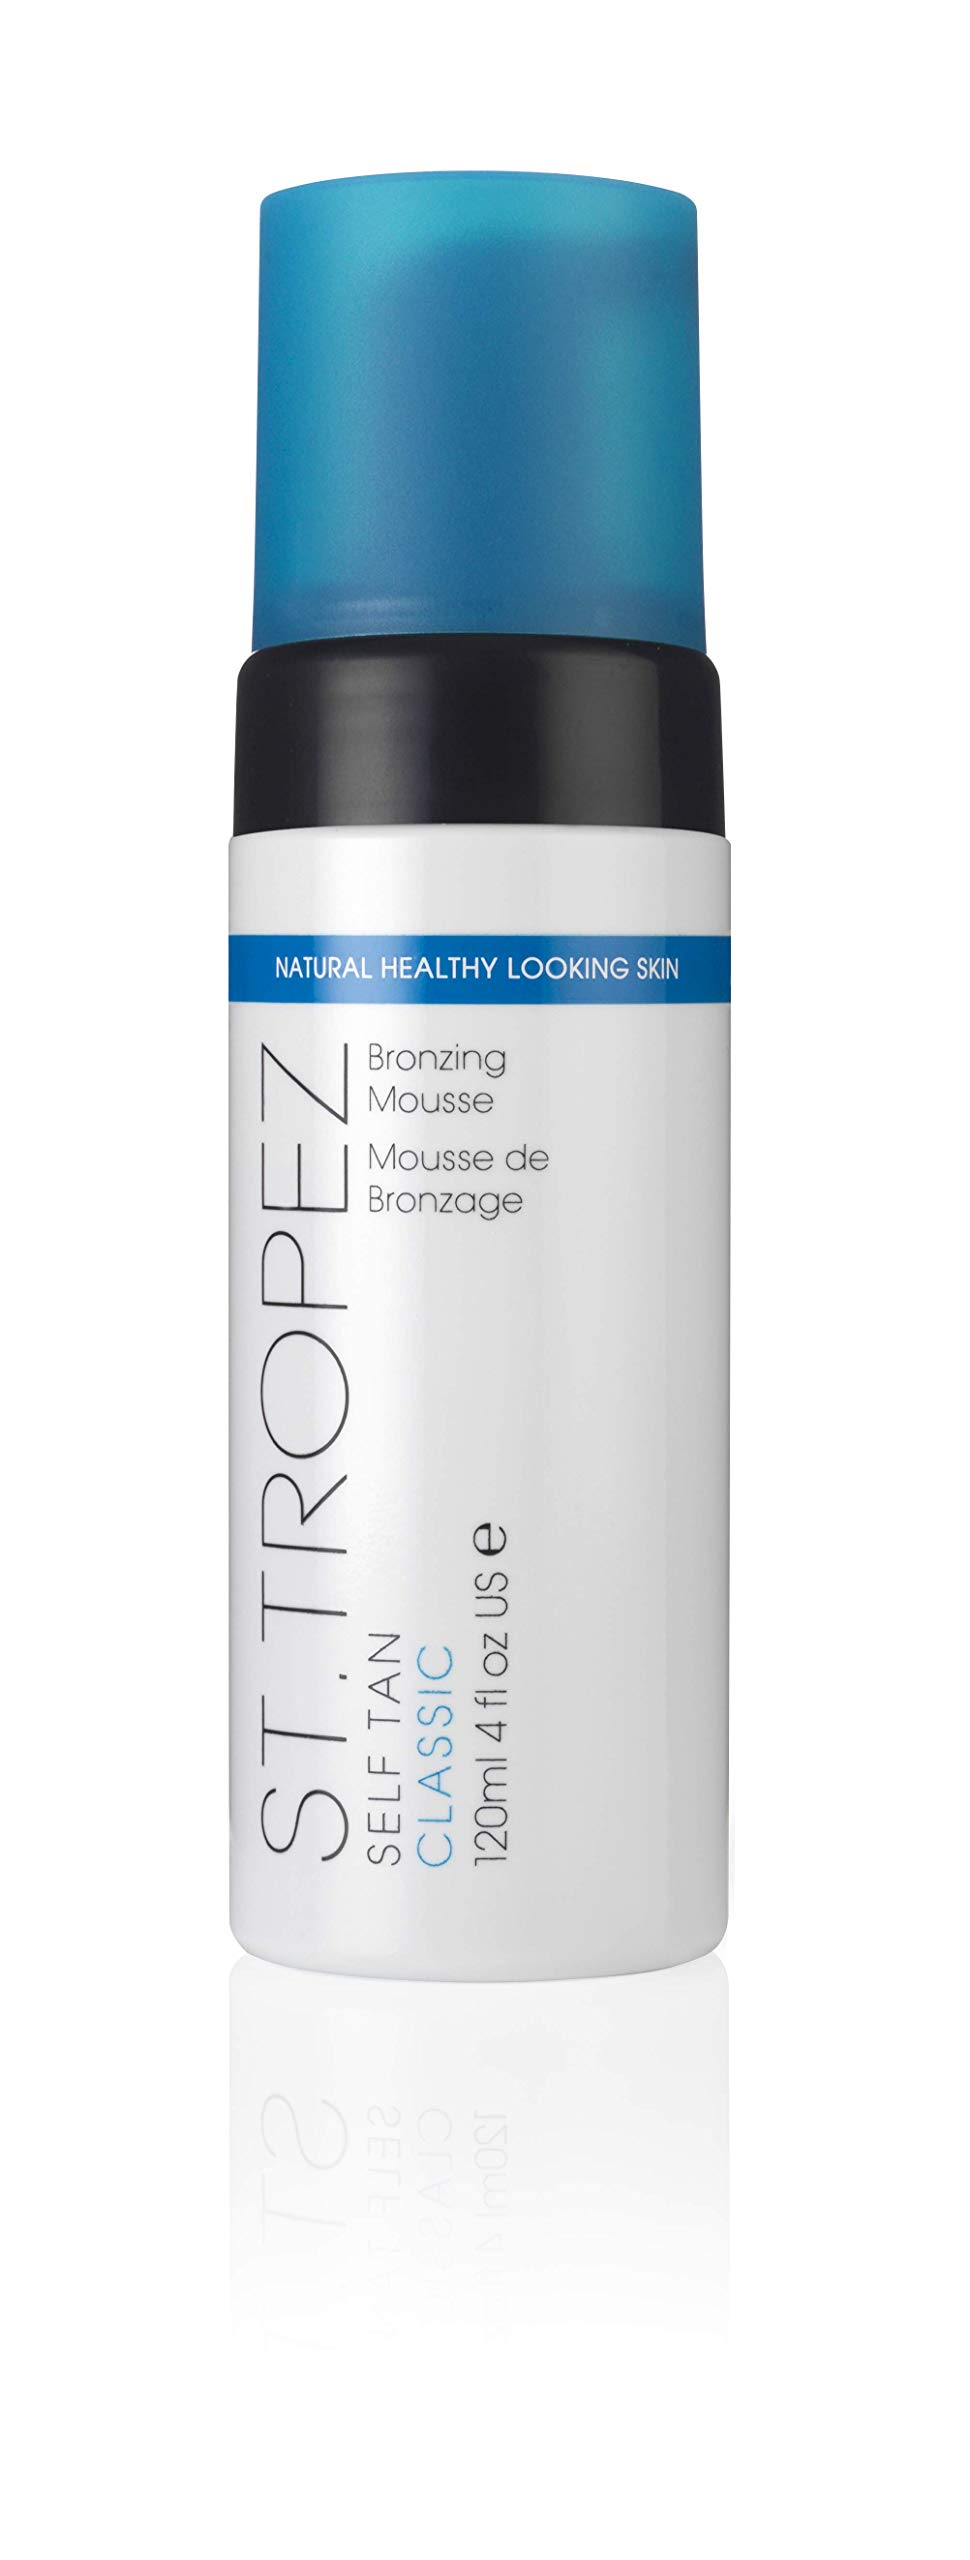 St. Tropez Self Tan Bronzing Mousse, 4 Fl Oz by St.Tropez